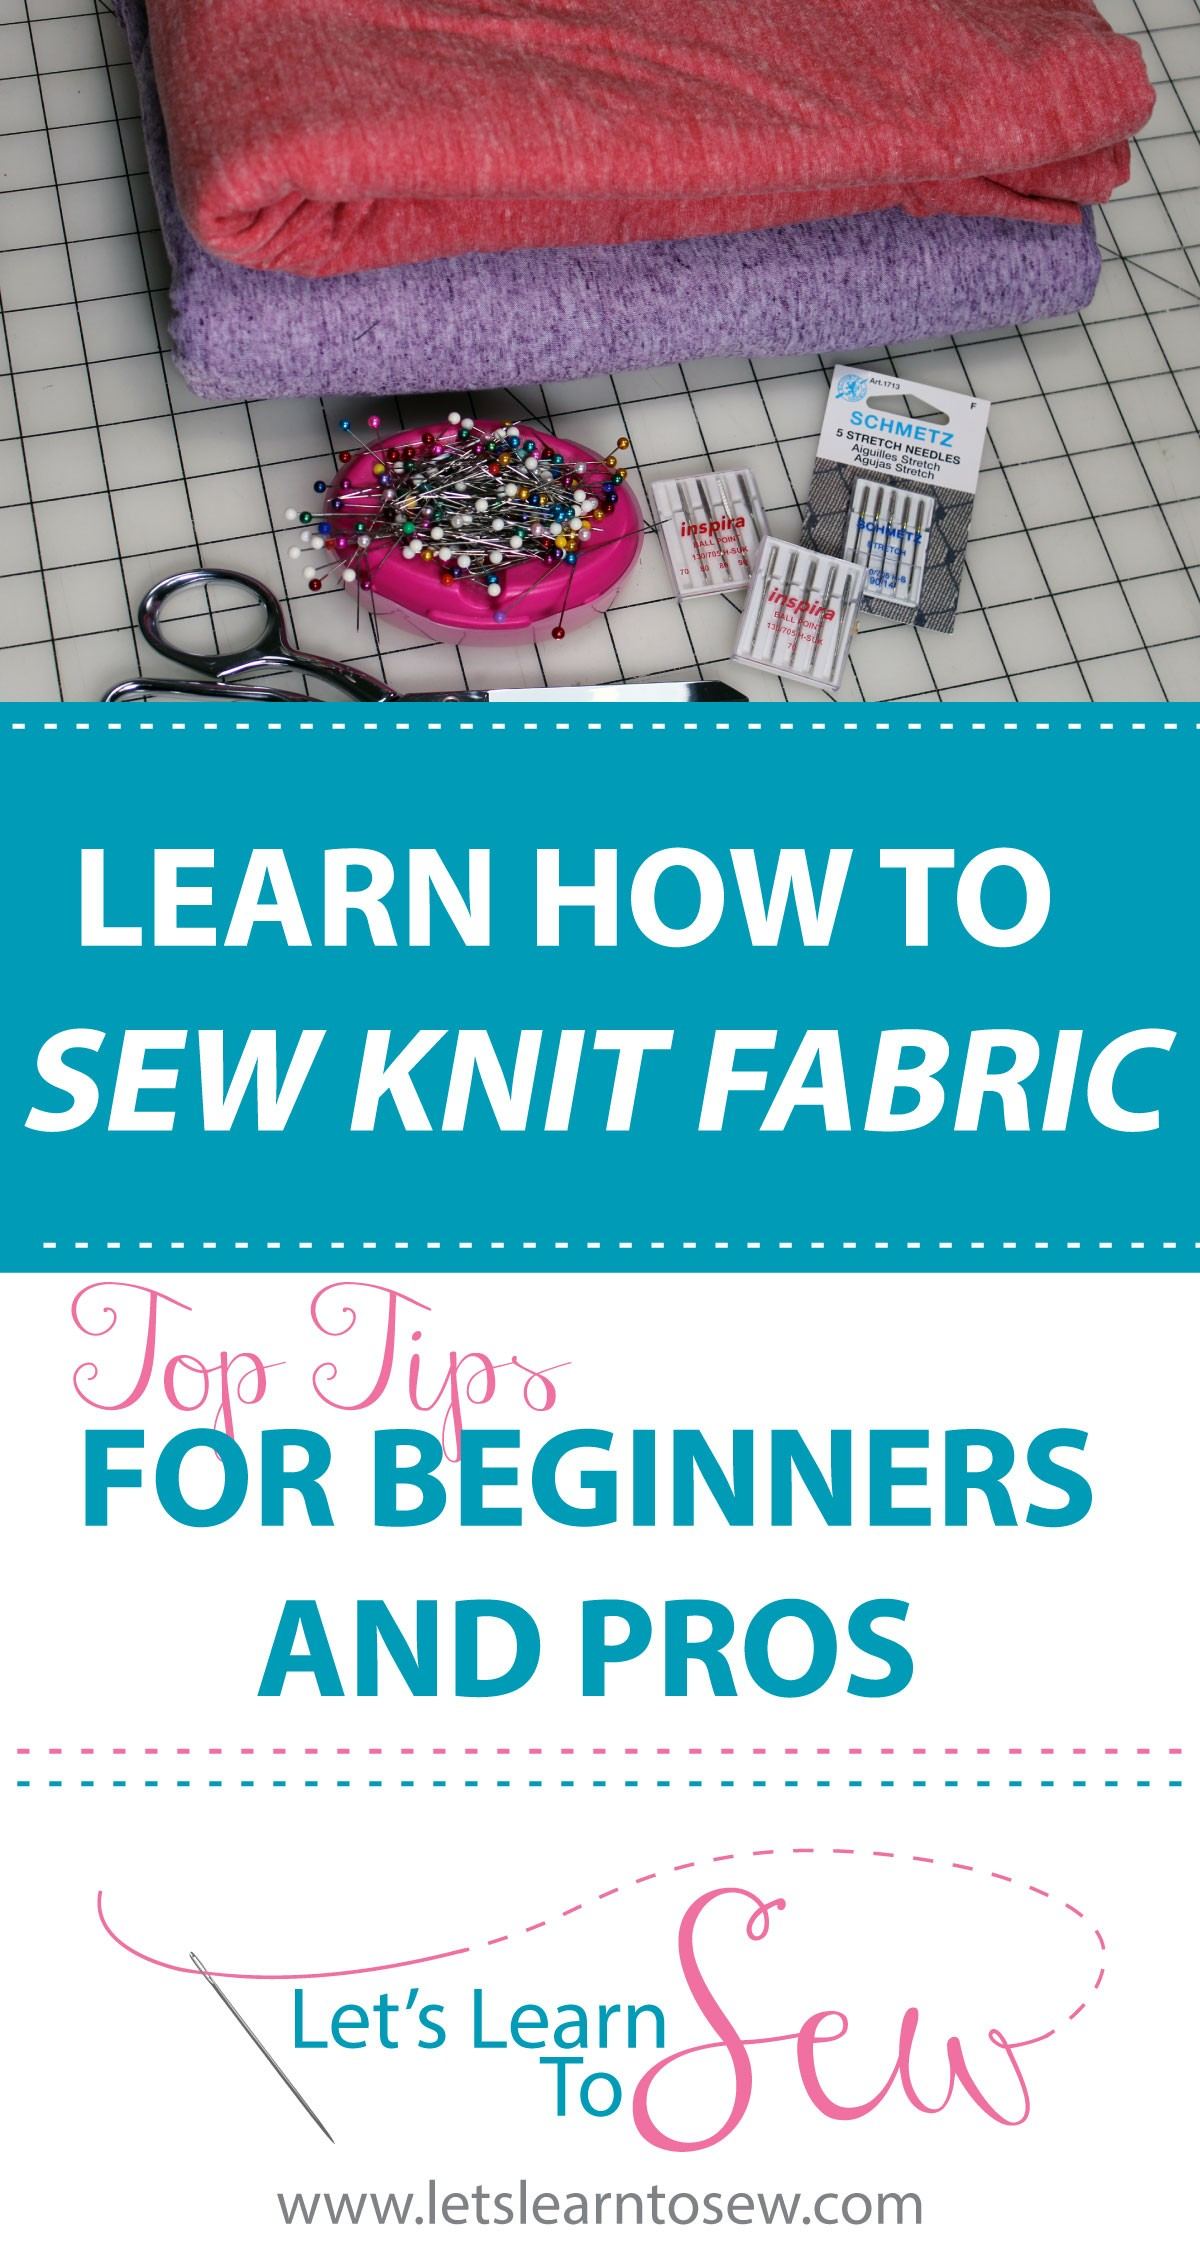 How to Sew with Knit Fabrics Tips for Beginners. Learn how tro sew knit fabric. Find out what type of thread and needle to use and machine settings.